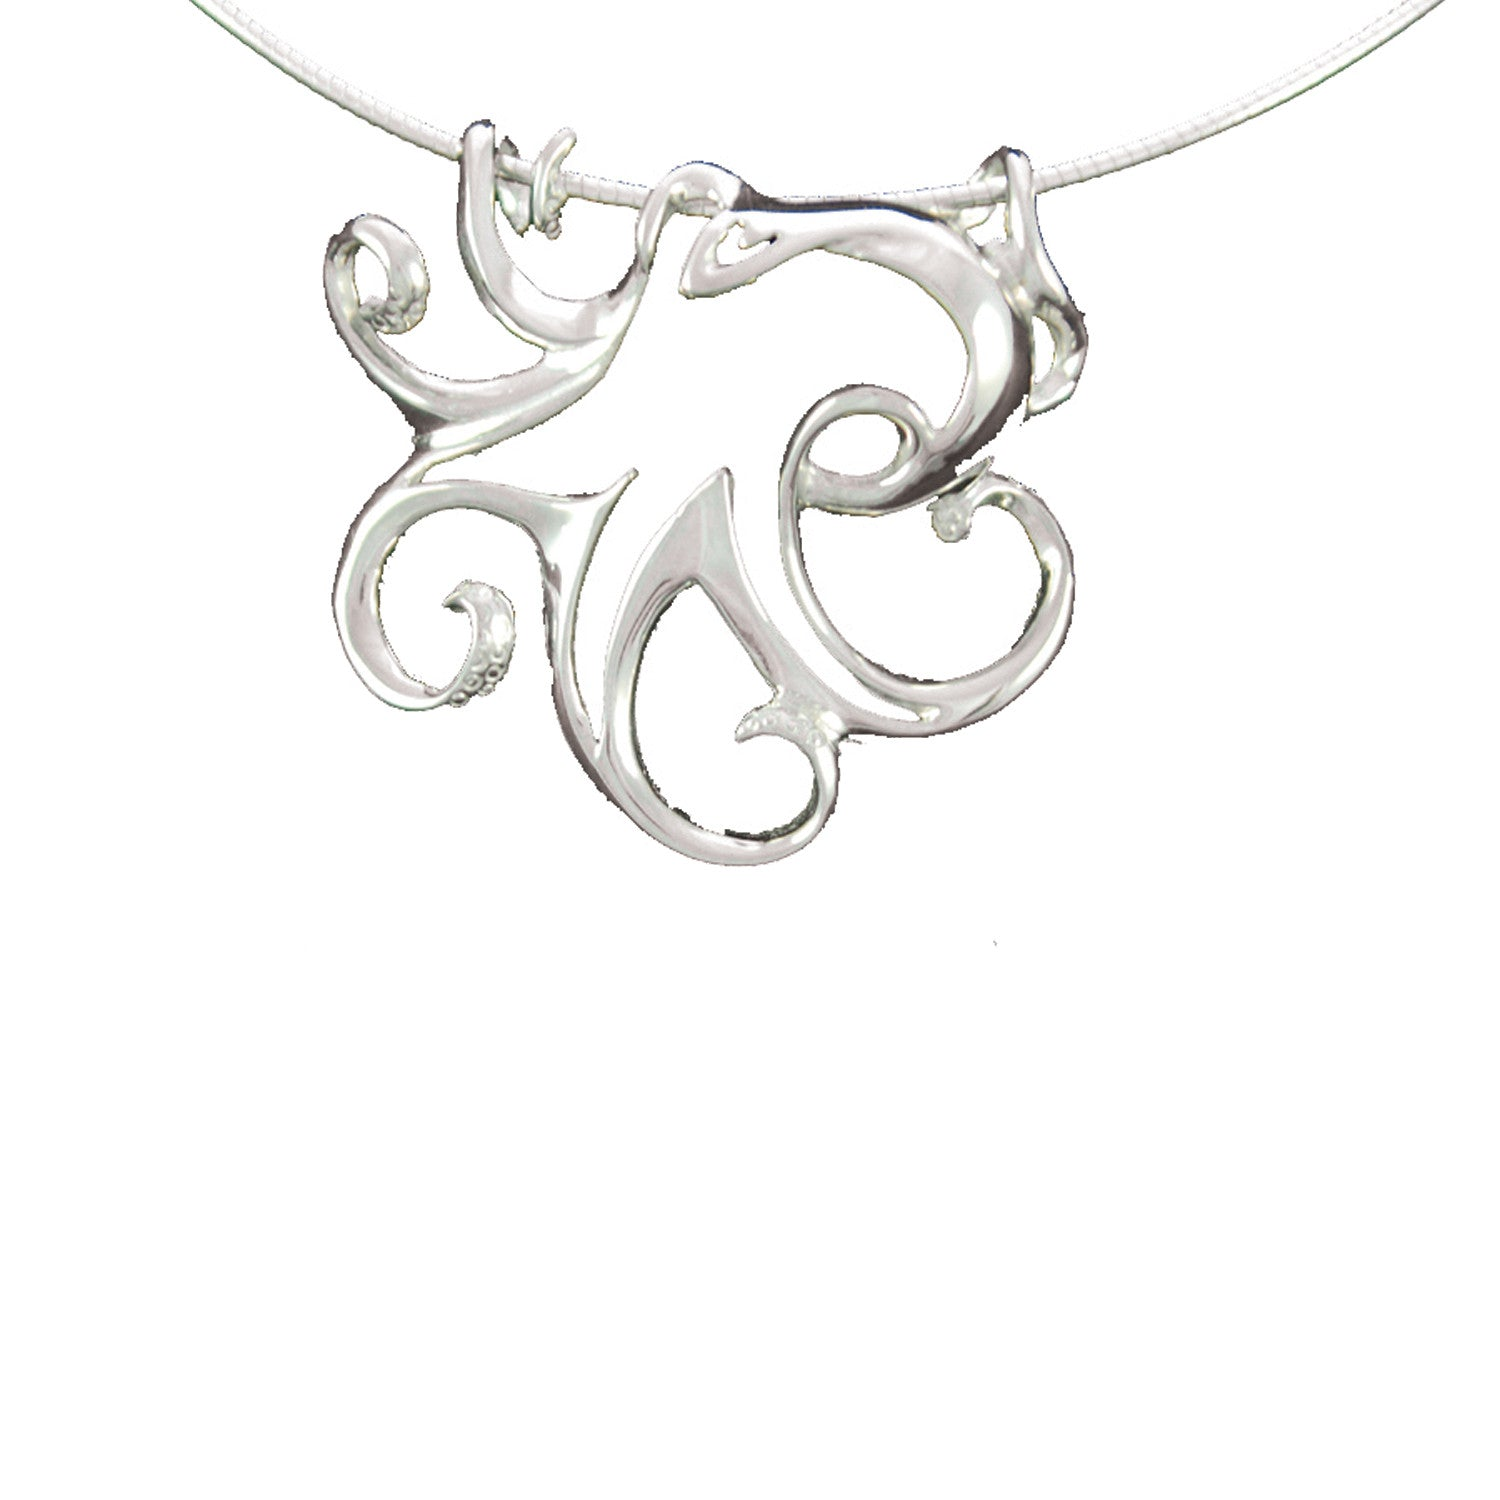 com silver highly sterling either s all in octopus around matthewamey wear it way detailed blog pendant